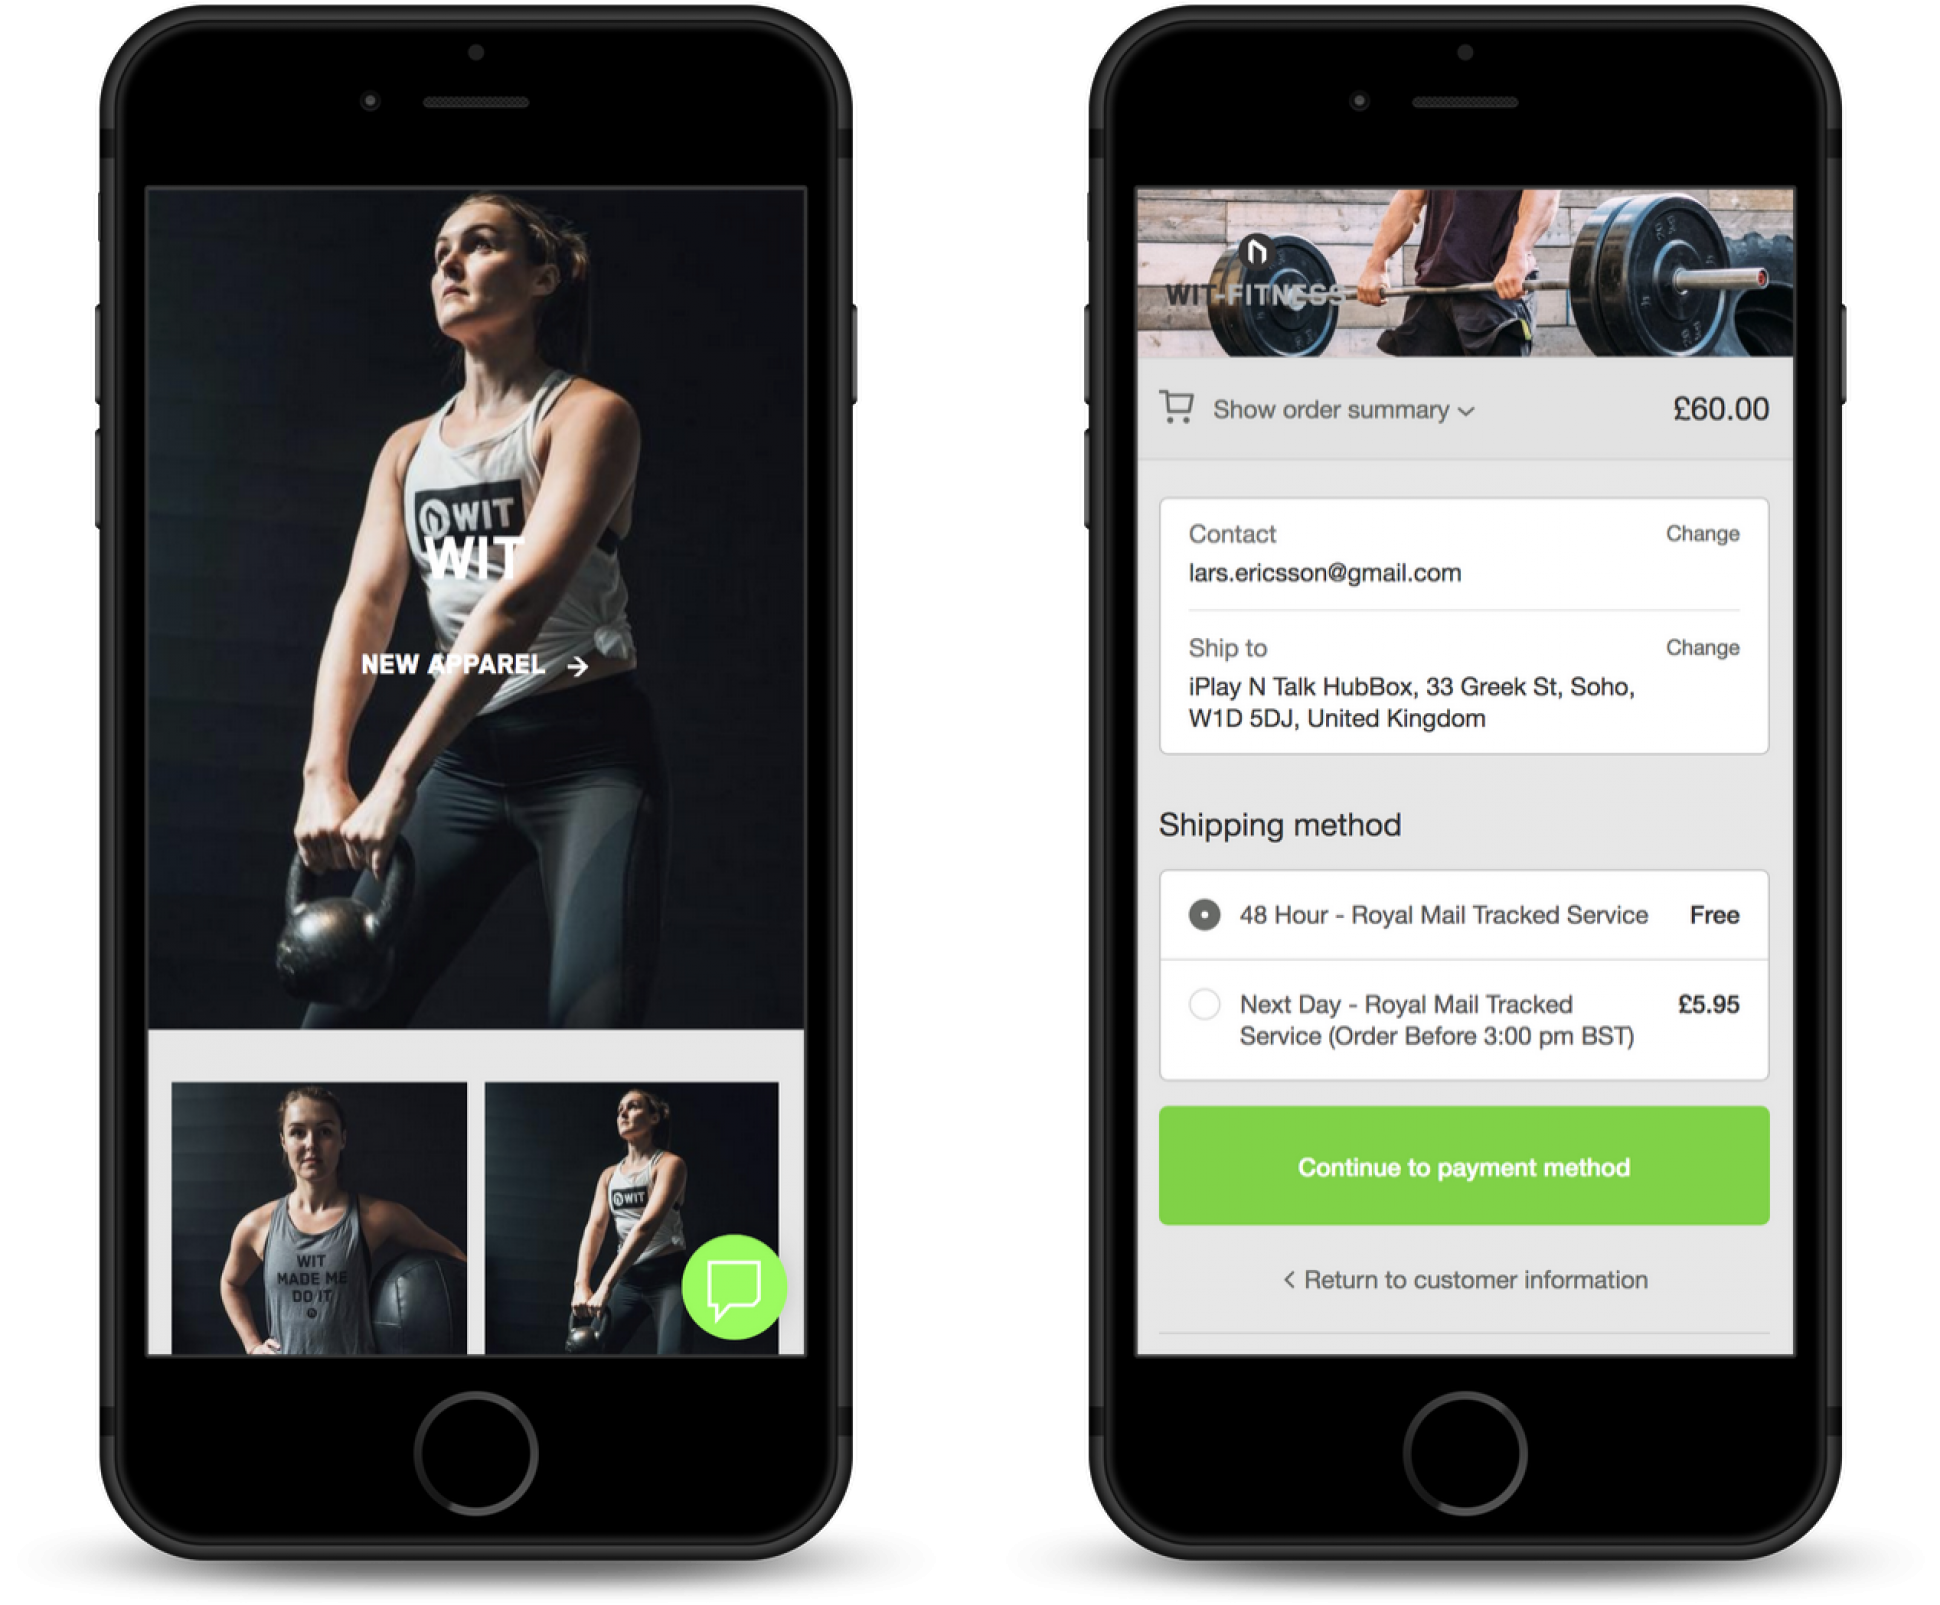 wit-fitness-mobile-image